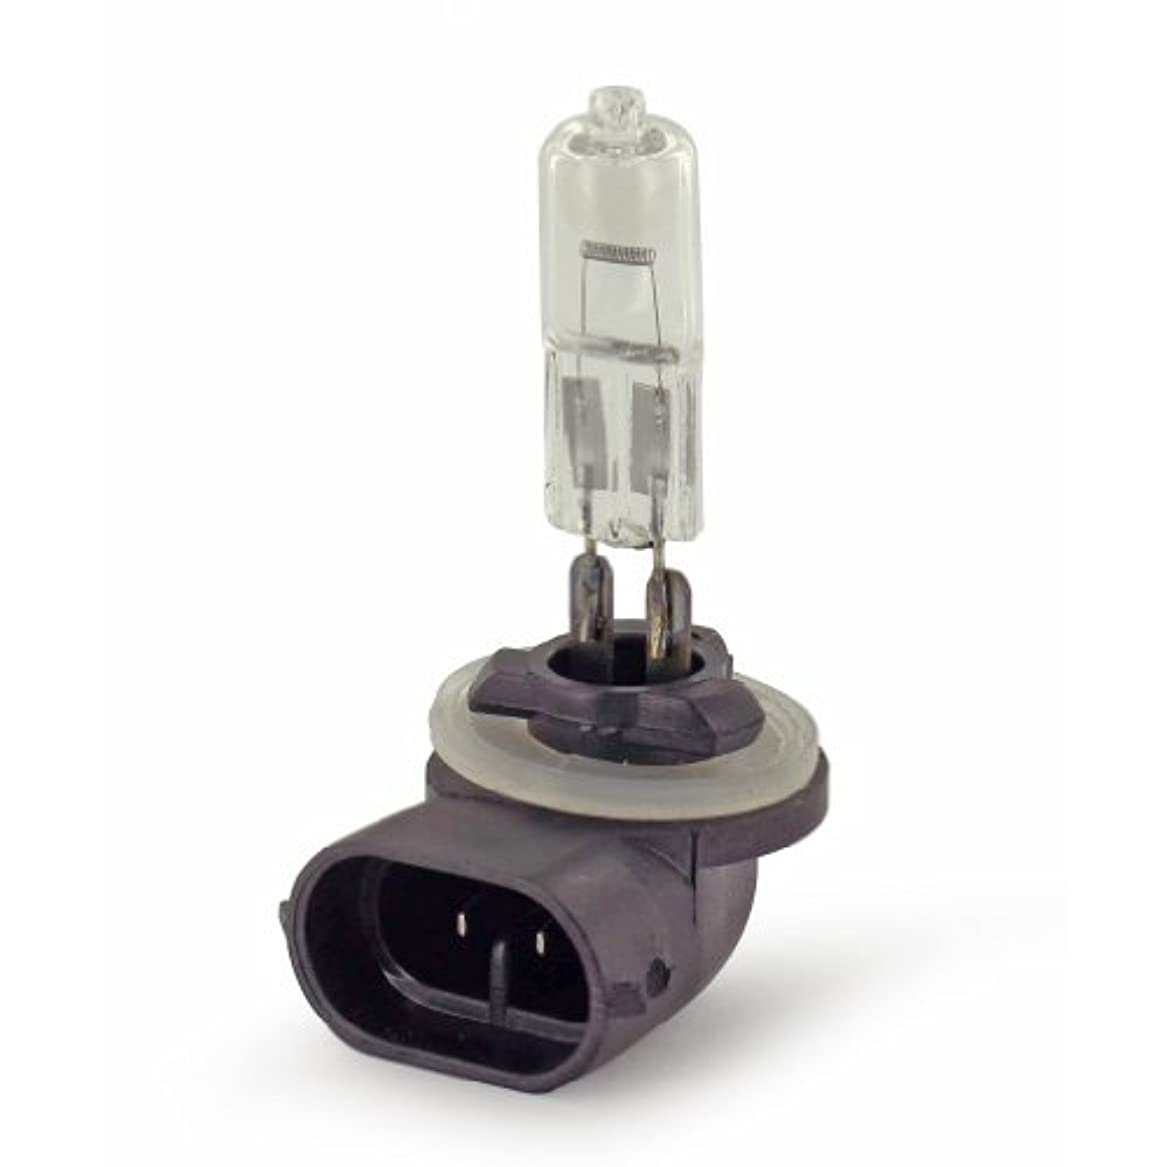 鉱石休み鉱石Intella 1062038 GE 894 Bulb, 12.8V, 38W by Intella Liftparts Inc.